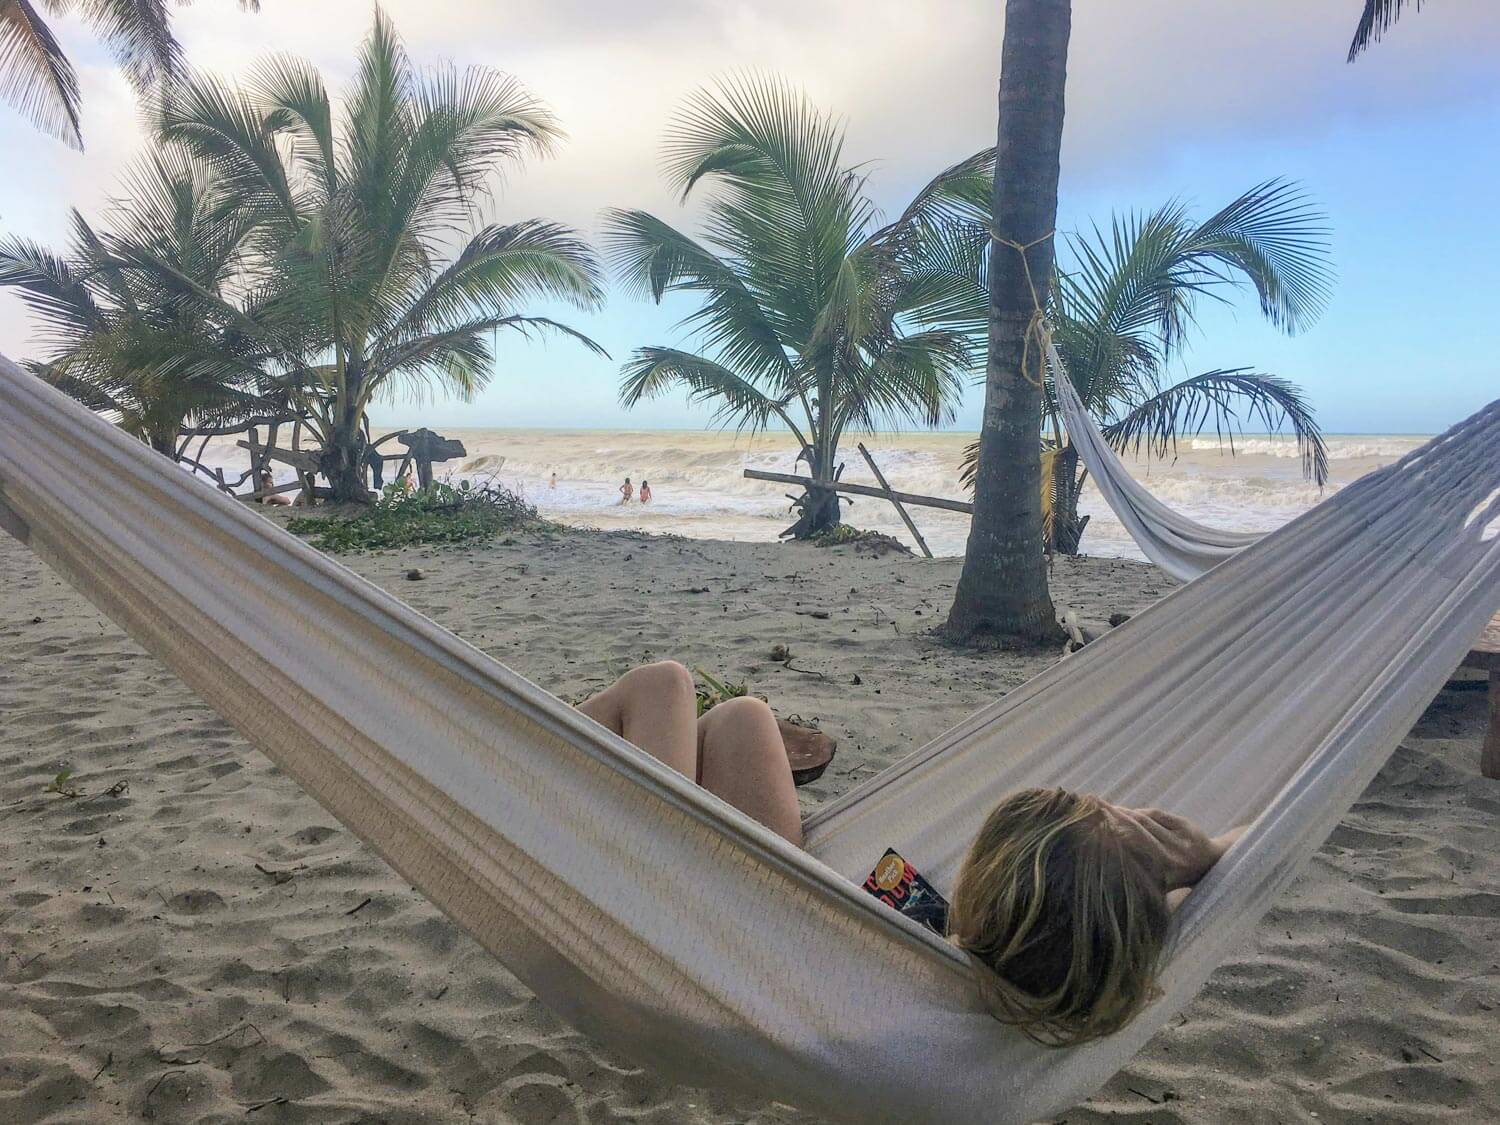 Relaxing on a hammock on a beach